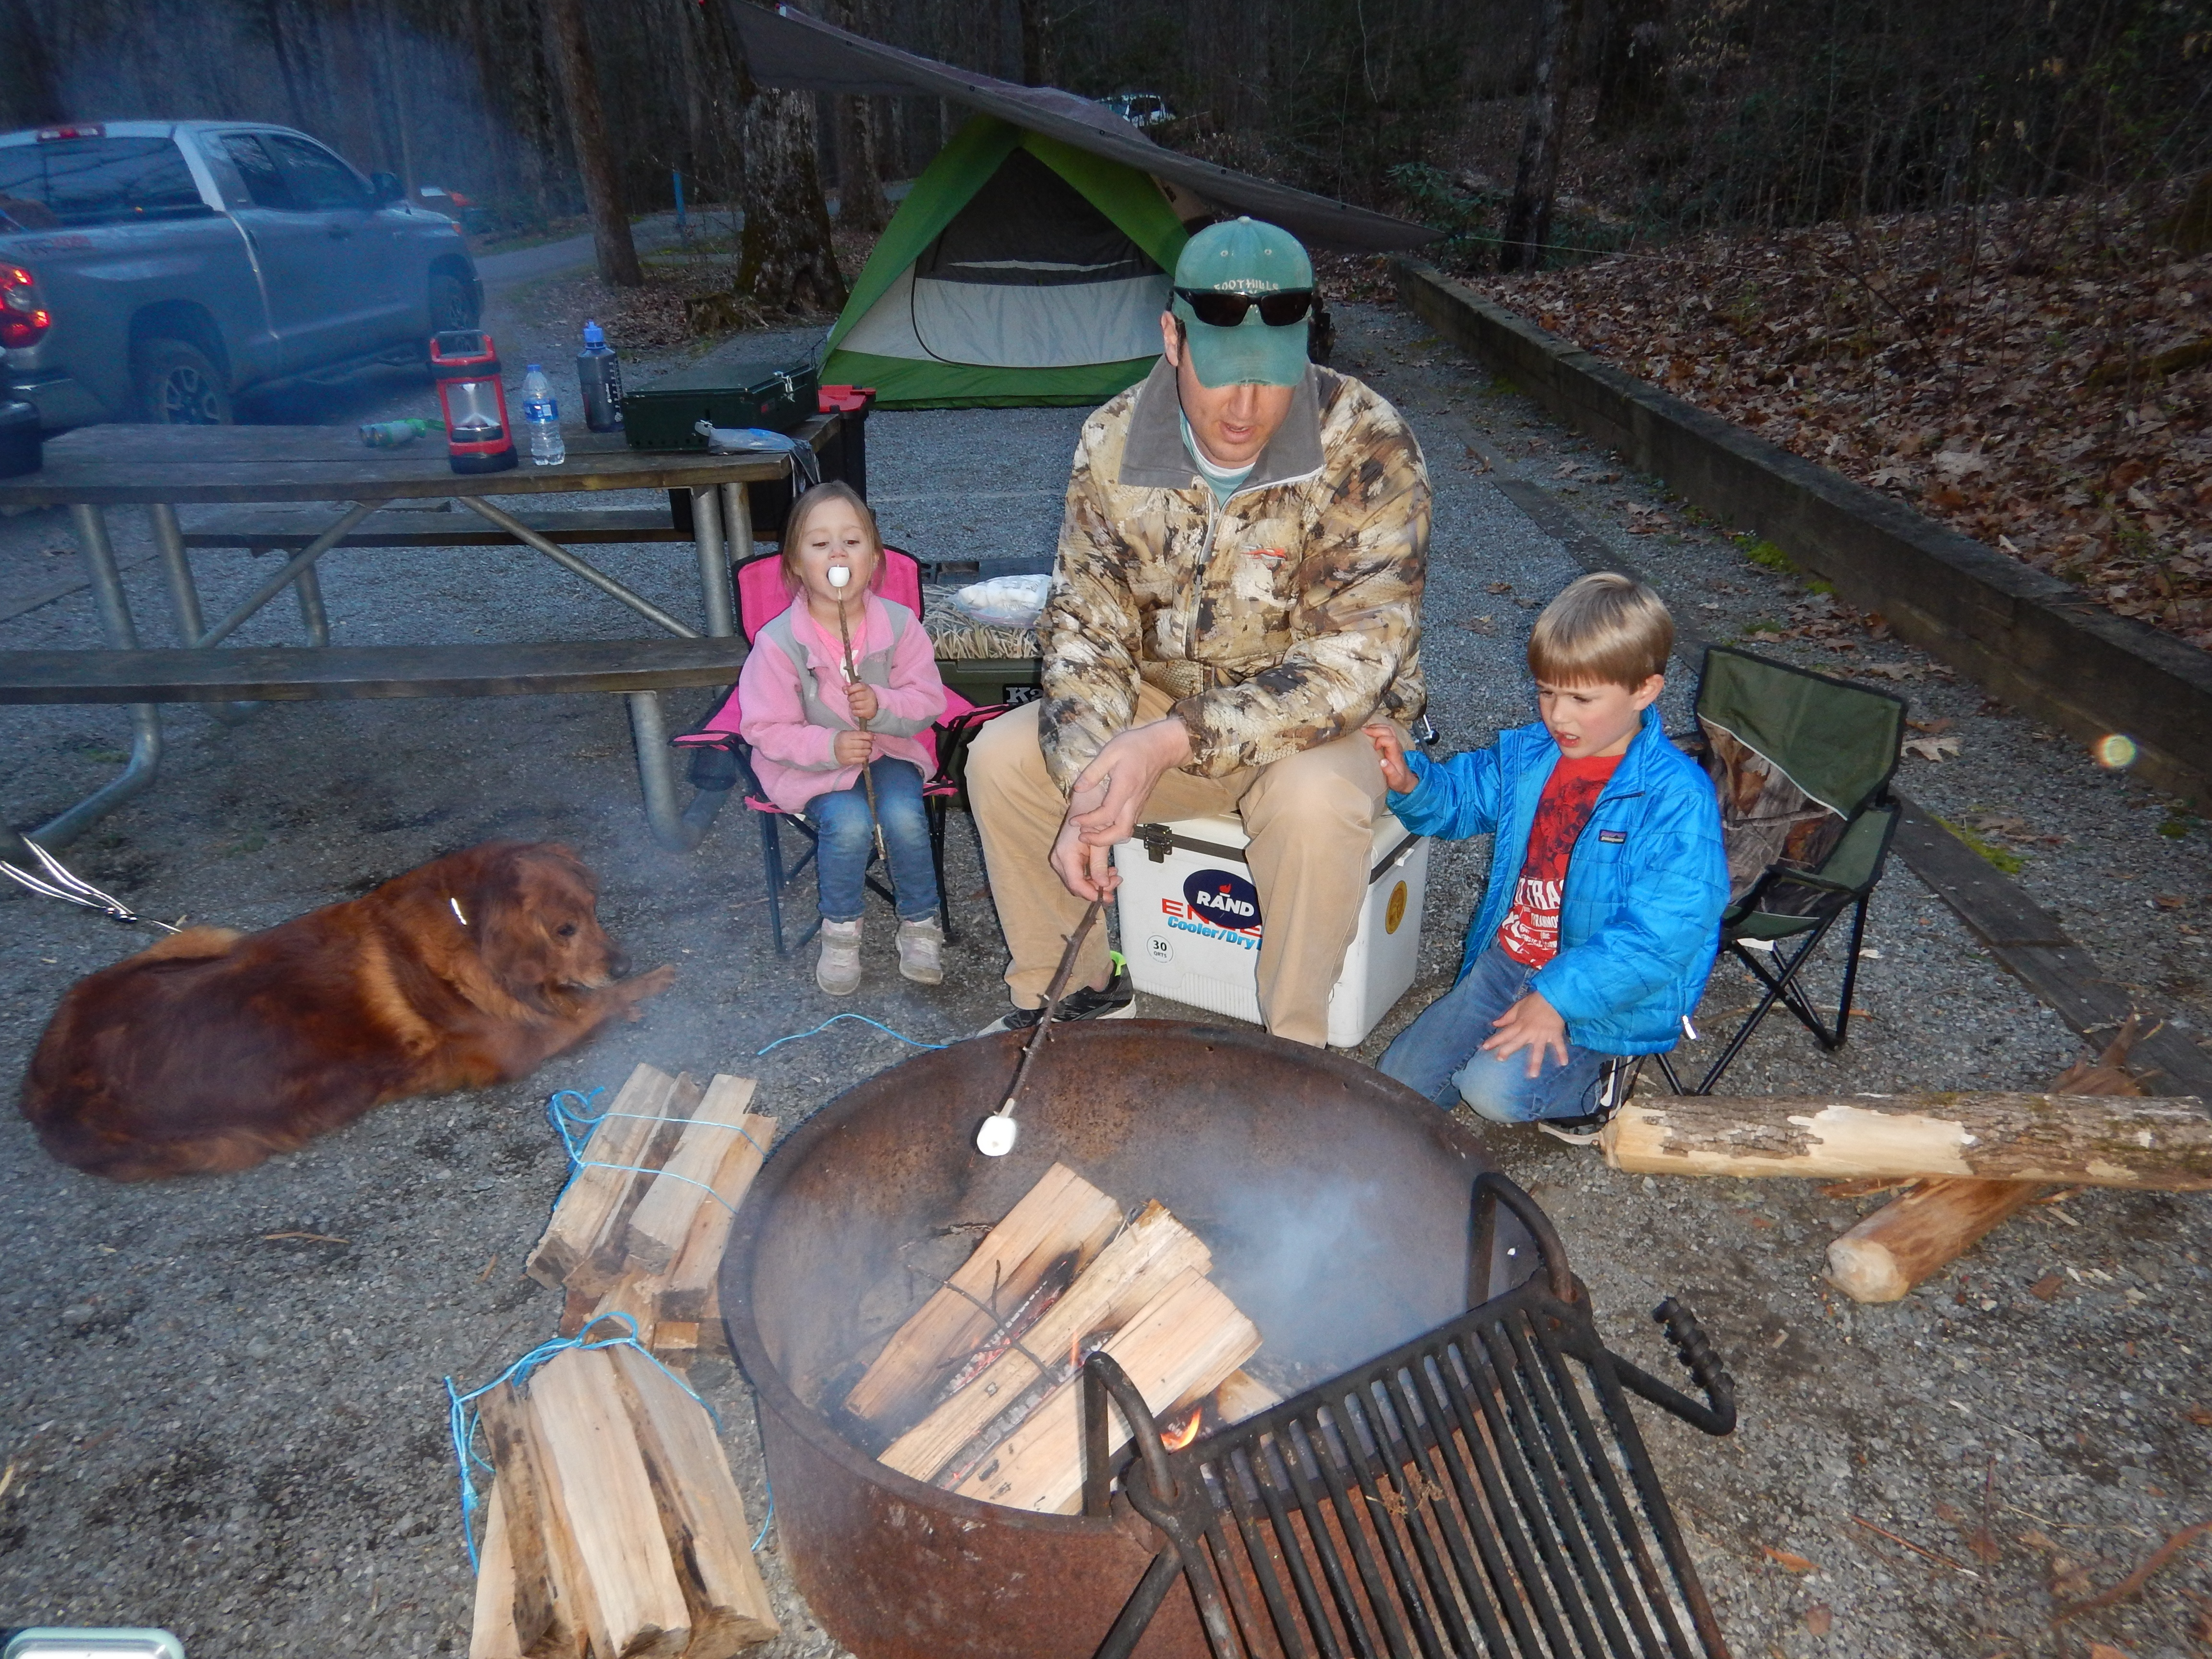 Roasting Marshmallows - Camping with Kids